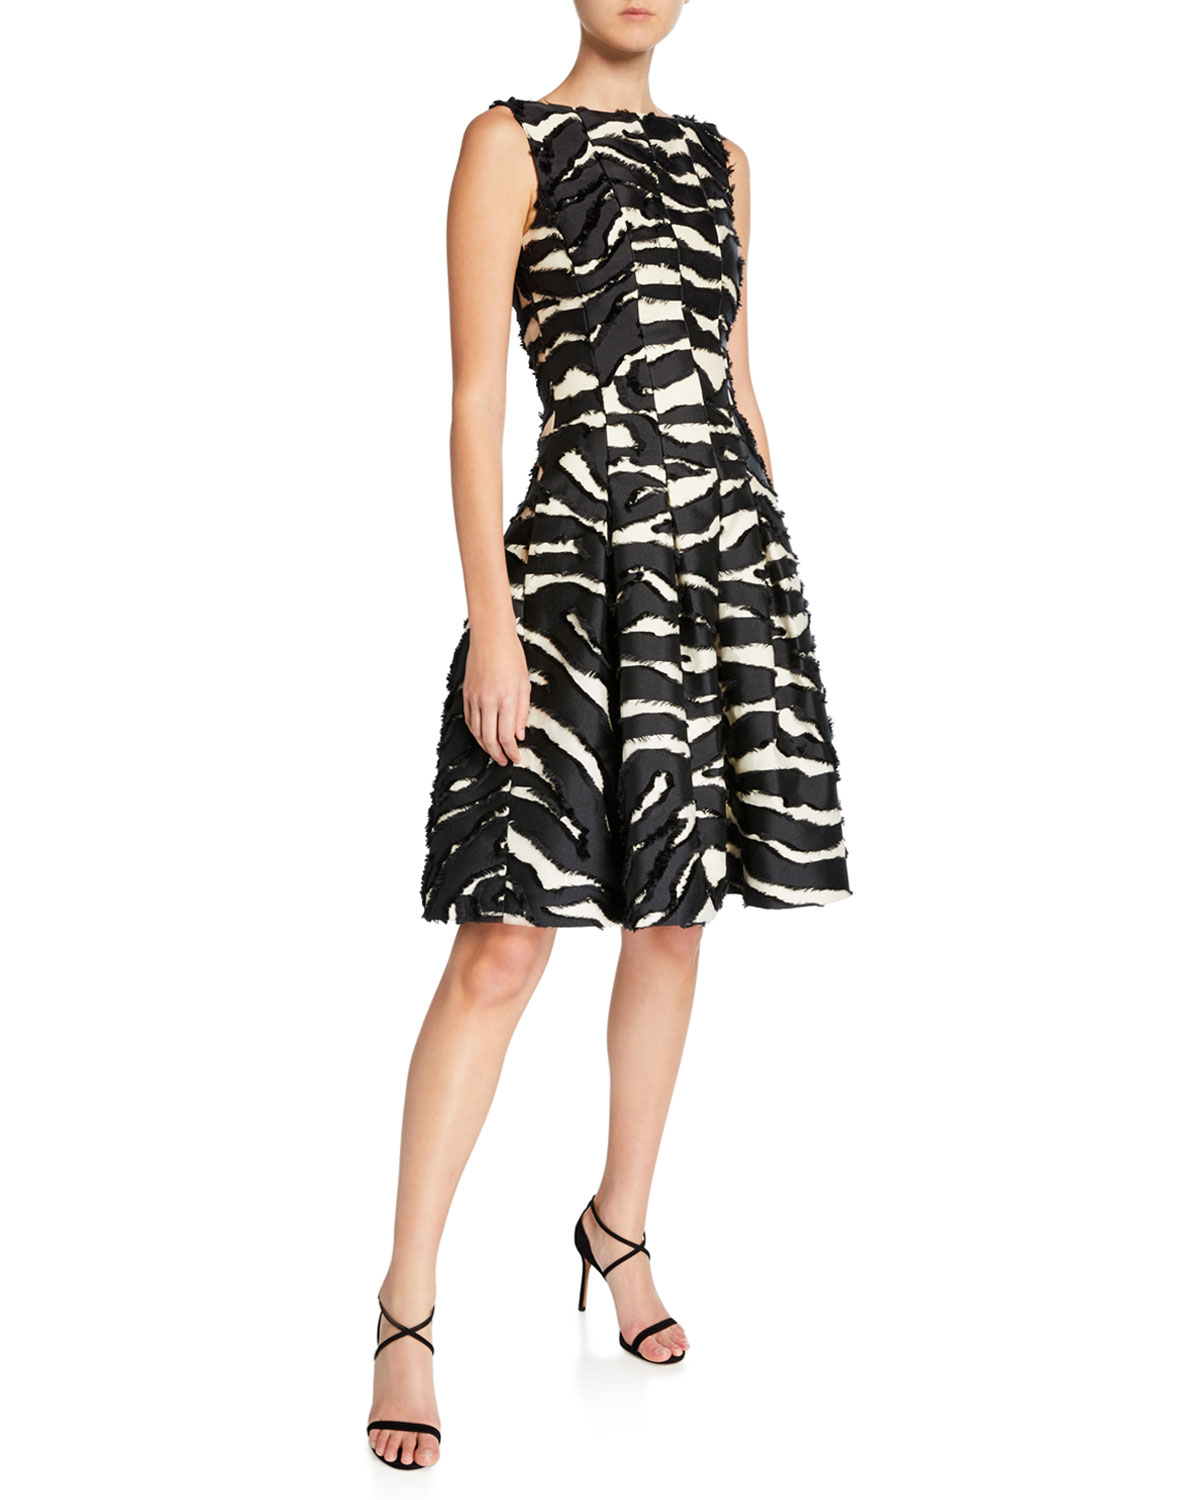 Oscar De La Renta Dresses ZEBRA PRINT DAY DRESS